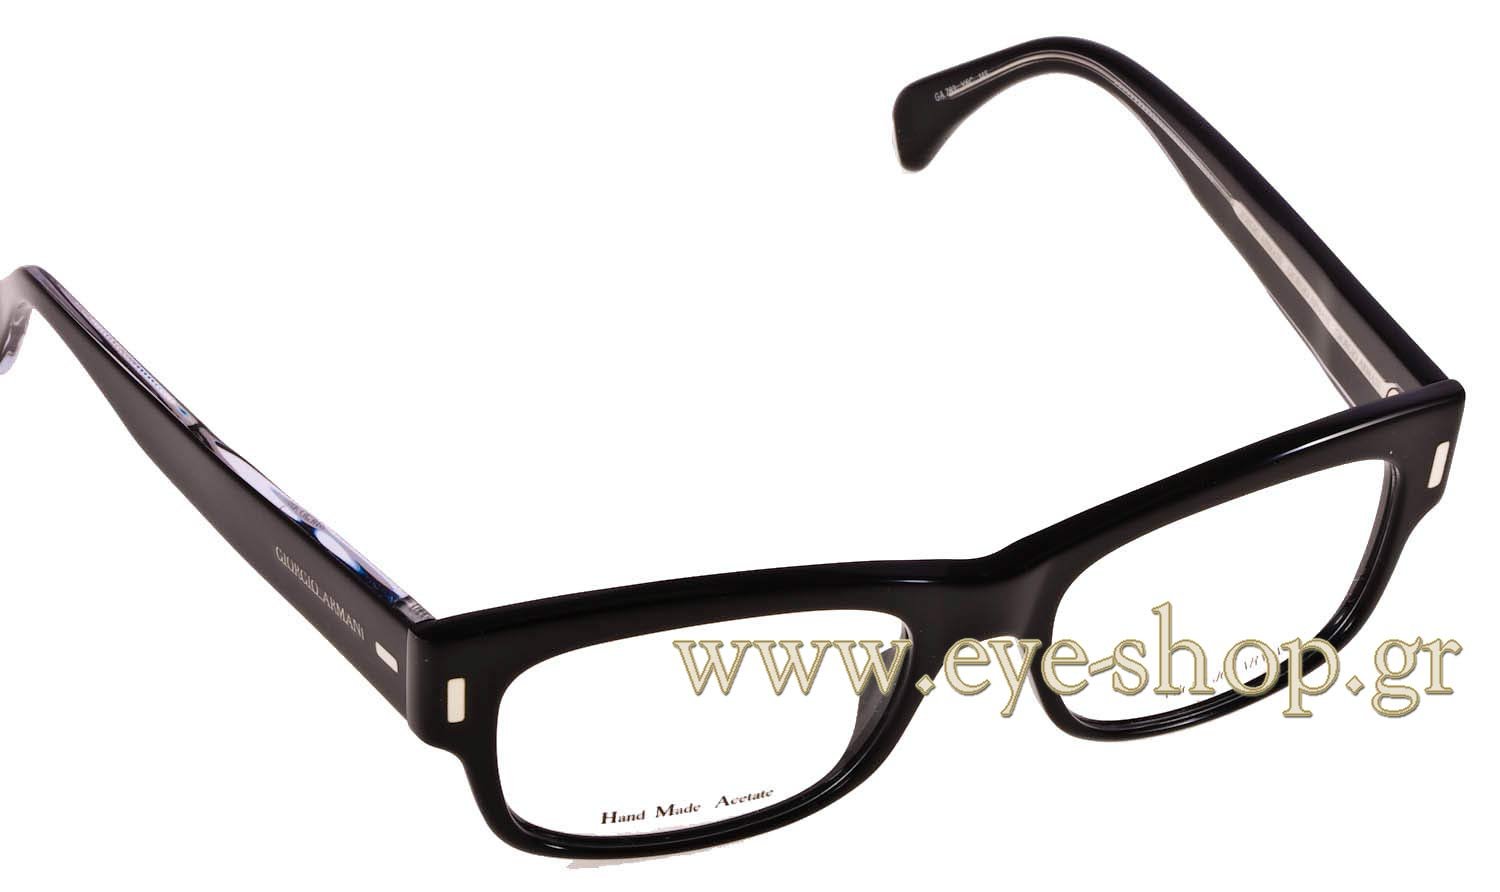 ARMANI EYEGLASS PARTS Glass Eyes Online